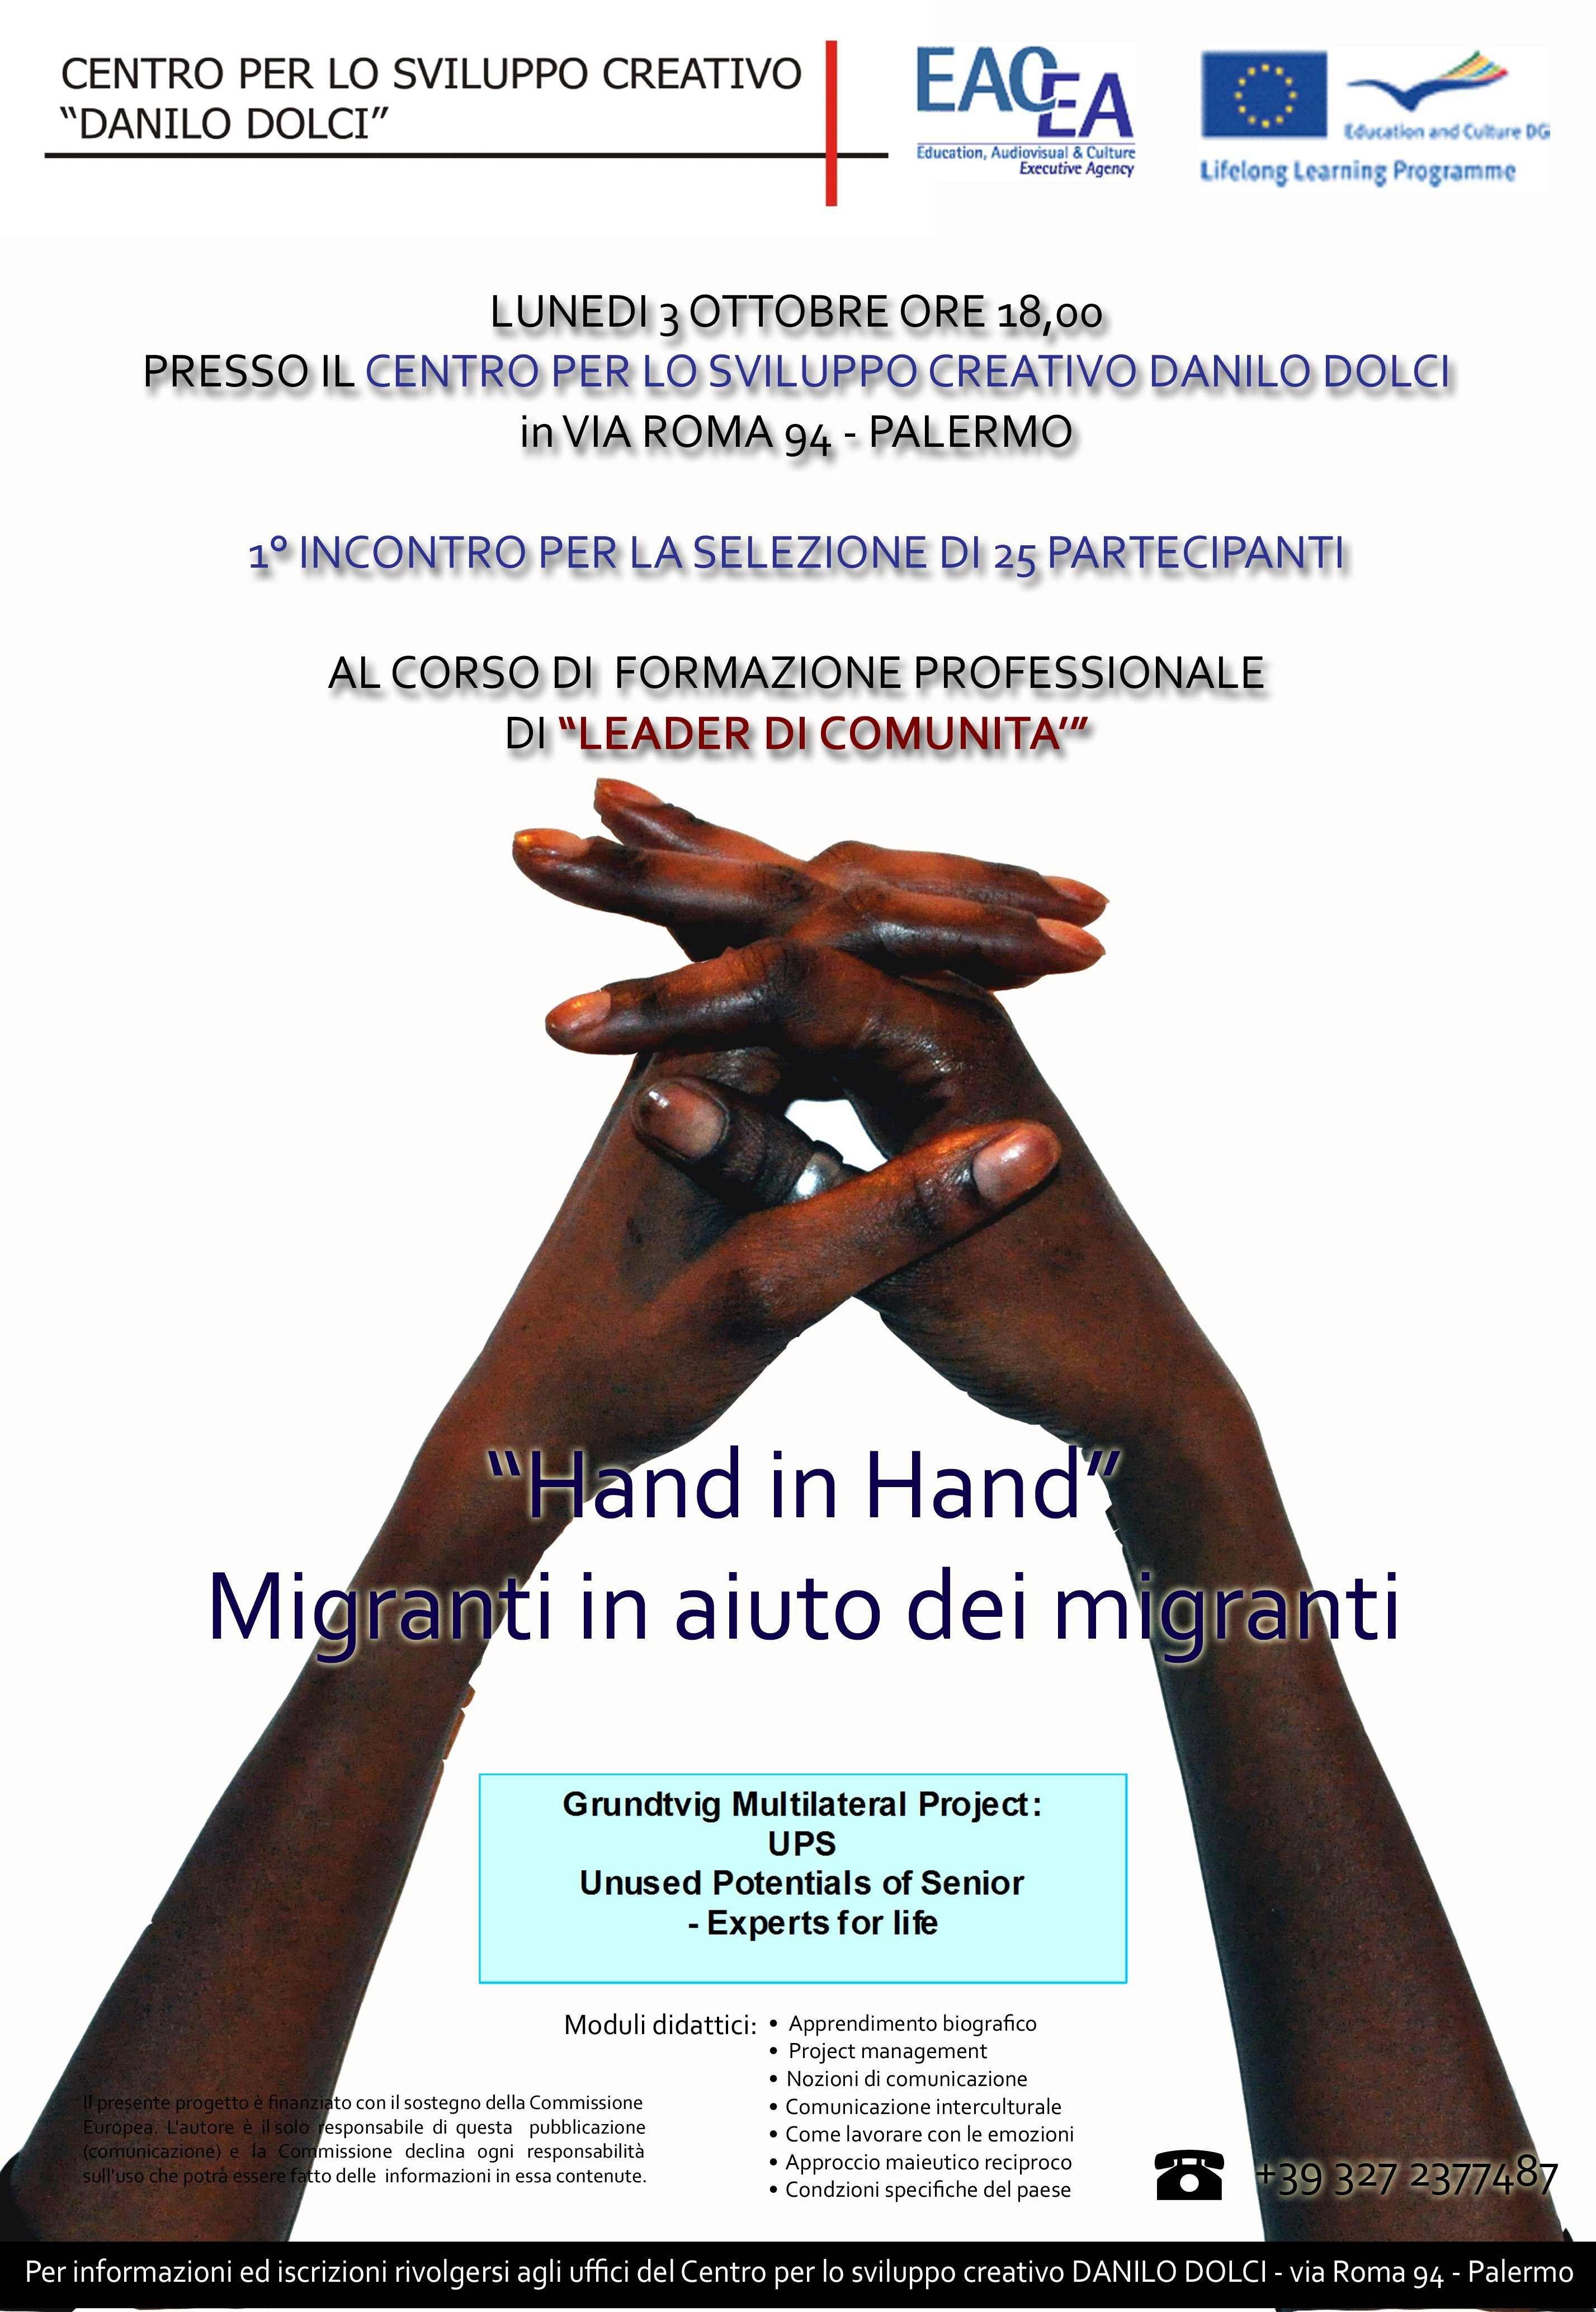 Hand in Hand training course for immigrant community leaders